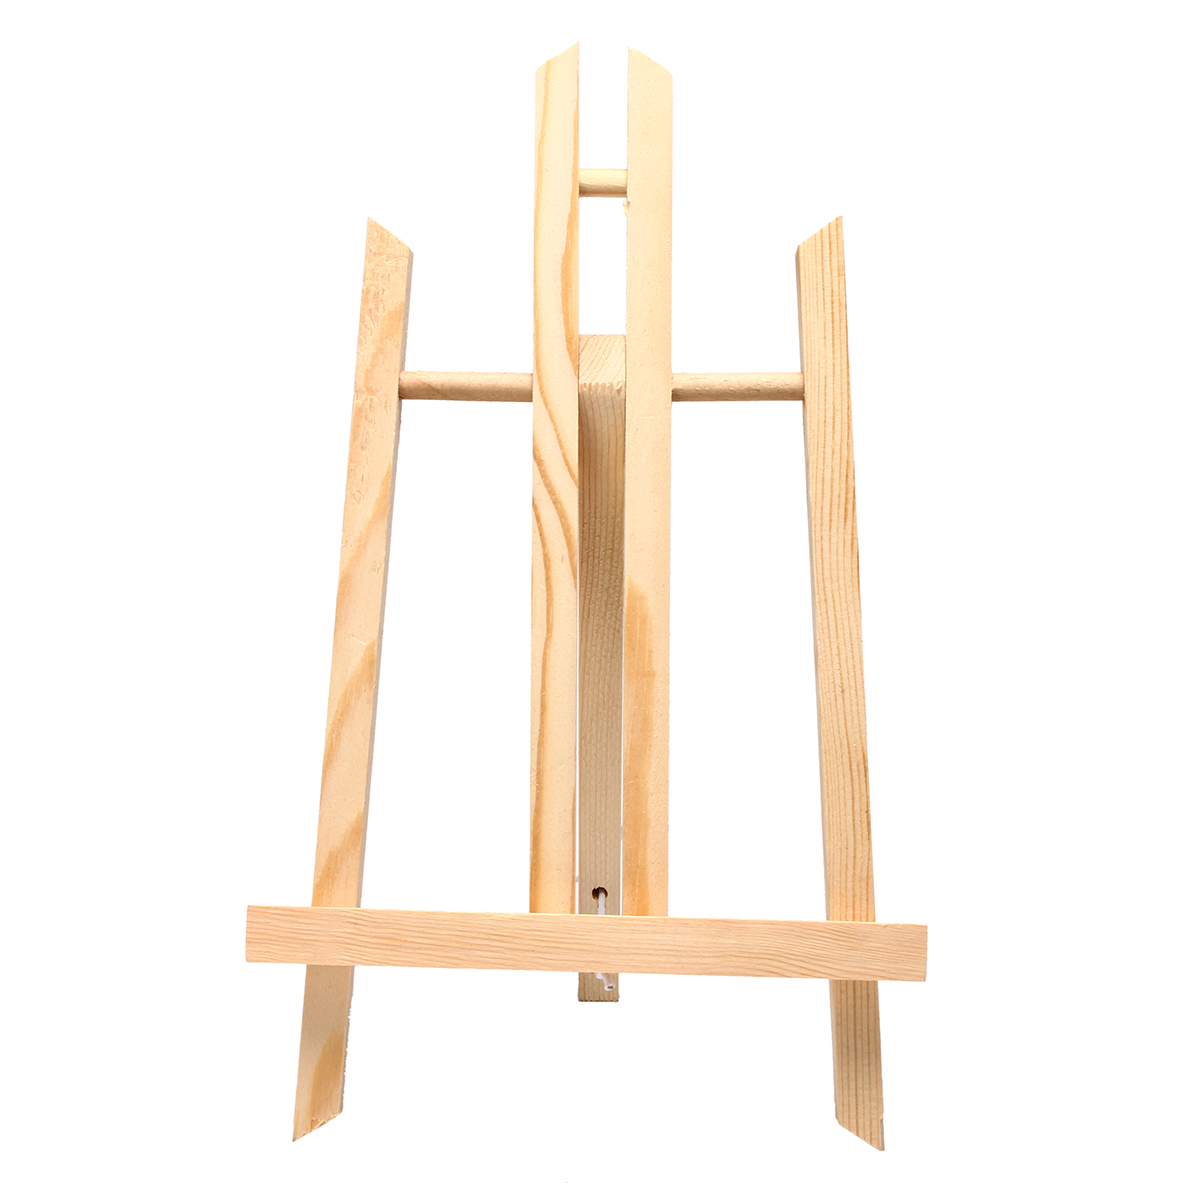 Artist Easel Australia Durable Wood Wooden Easels Display Tripod Art Artist Painting Stand Paint Rack